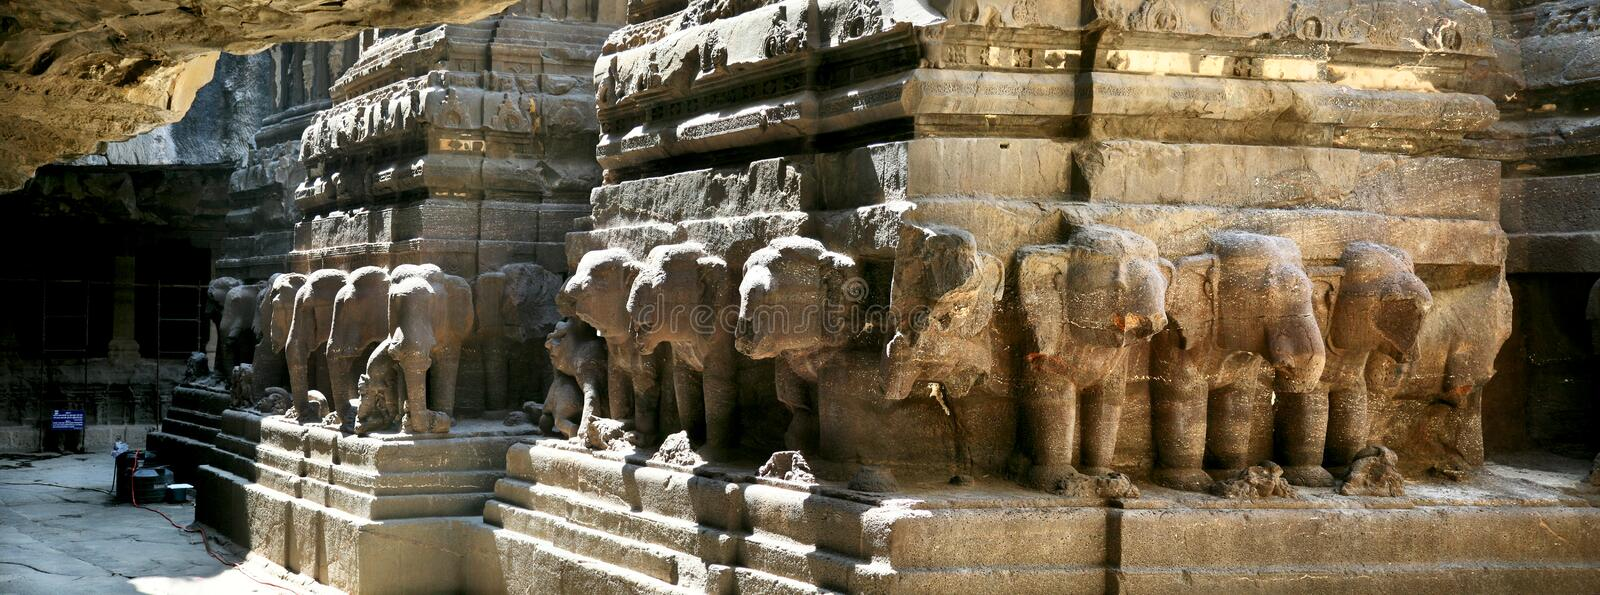 Panorama of Ellora caves in India royalty free stock photos